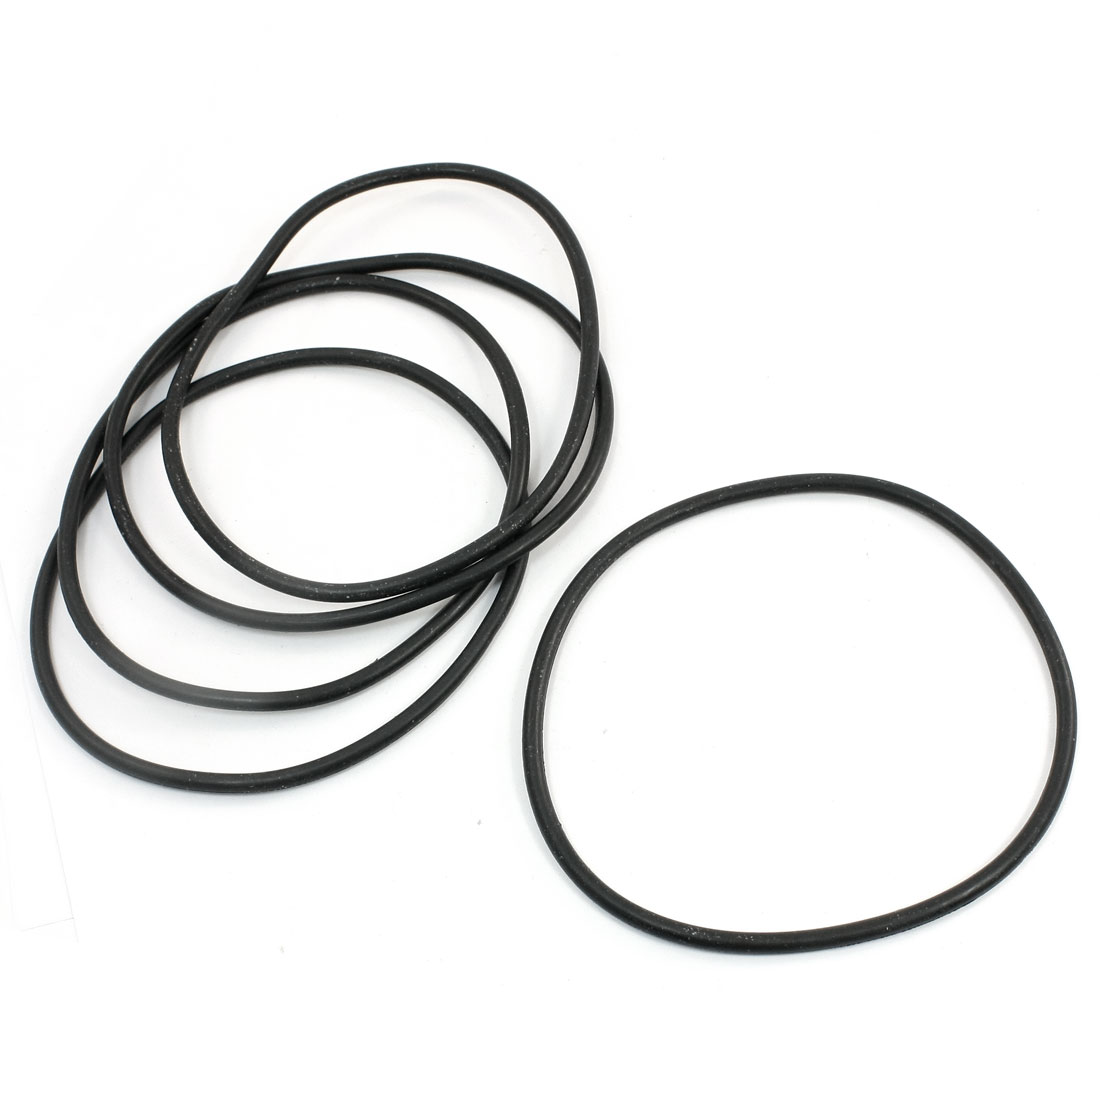 5PCS 145mm x 135mm x 5mm Rubber O Ring Oil Seal Gasket Replacement